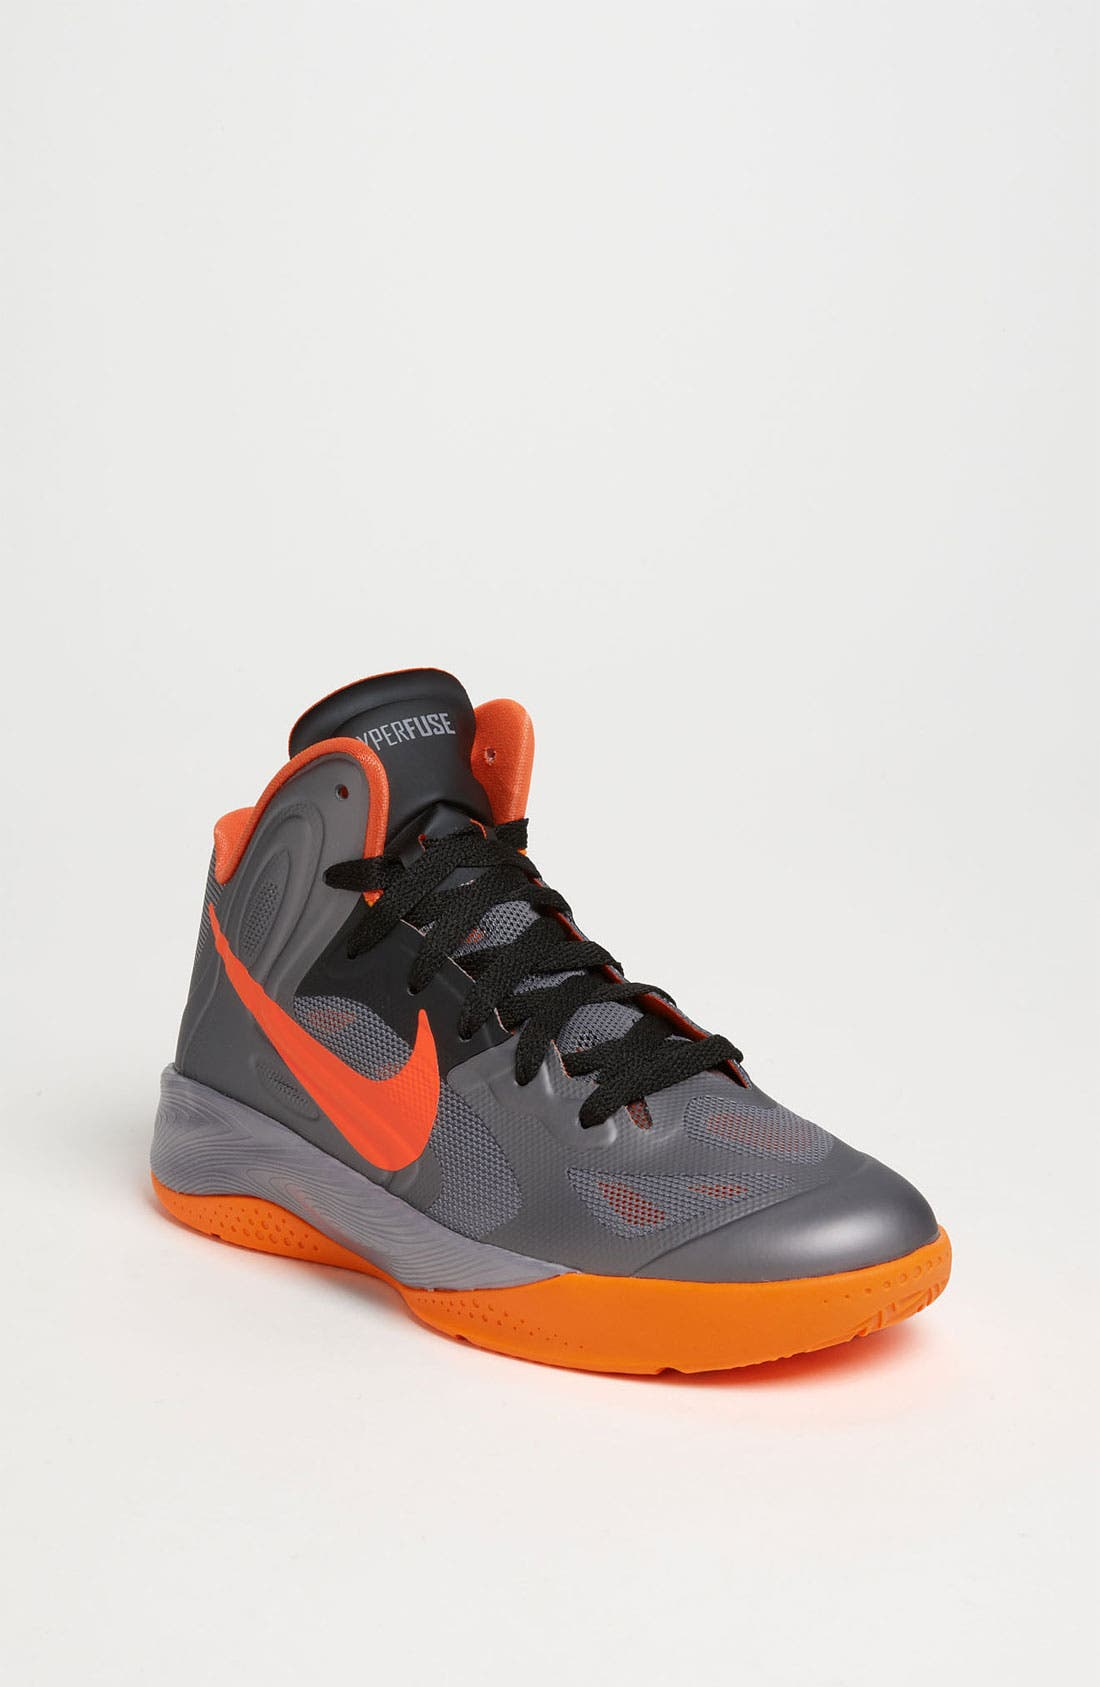 Alternate Image 1 Selected - Nike 'Hyperfuse 2012' Basketball Shoe (Big Kid)